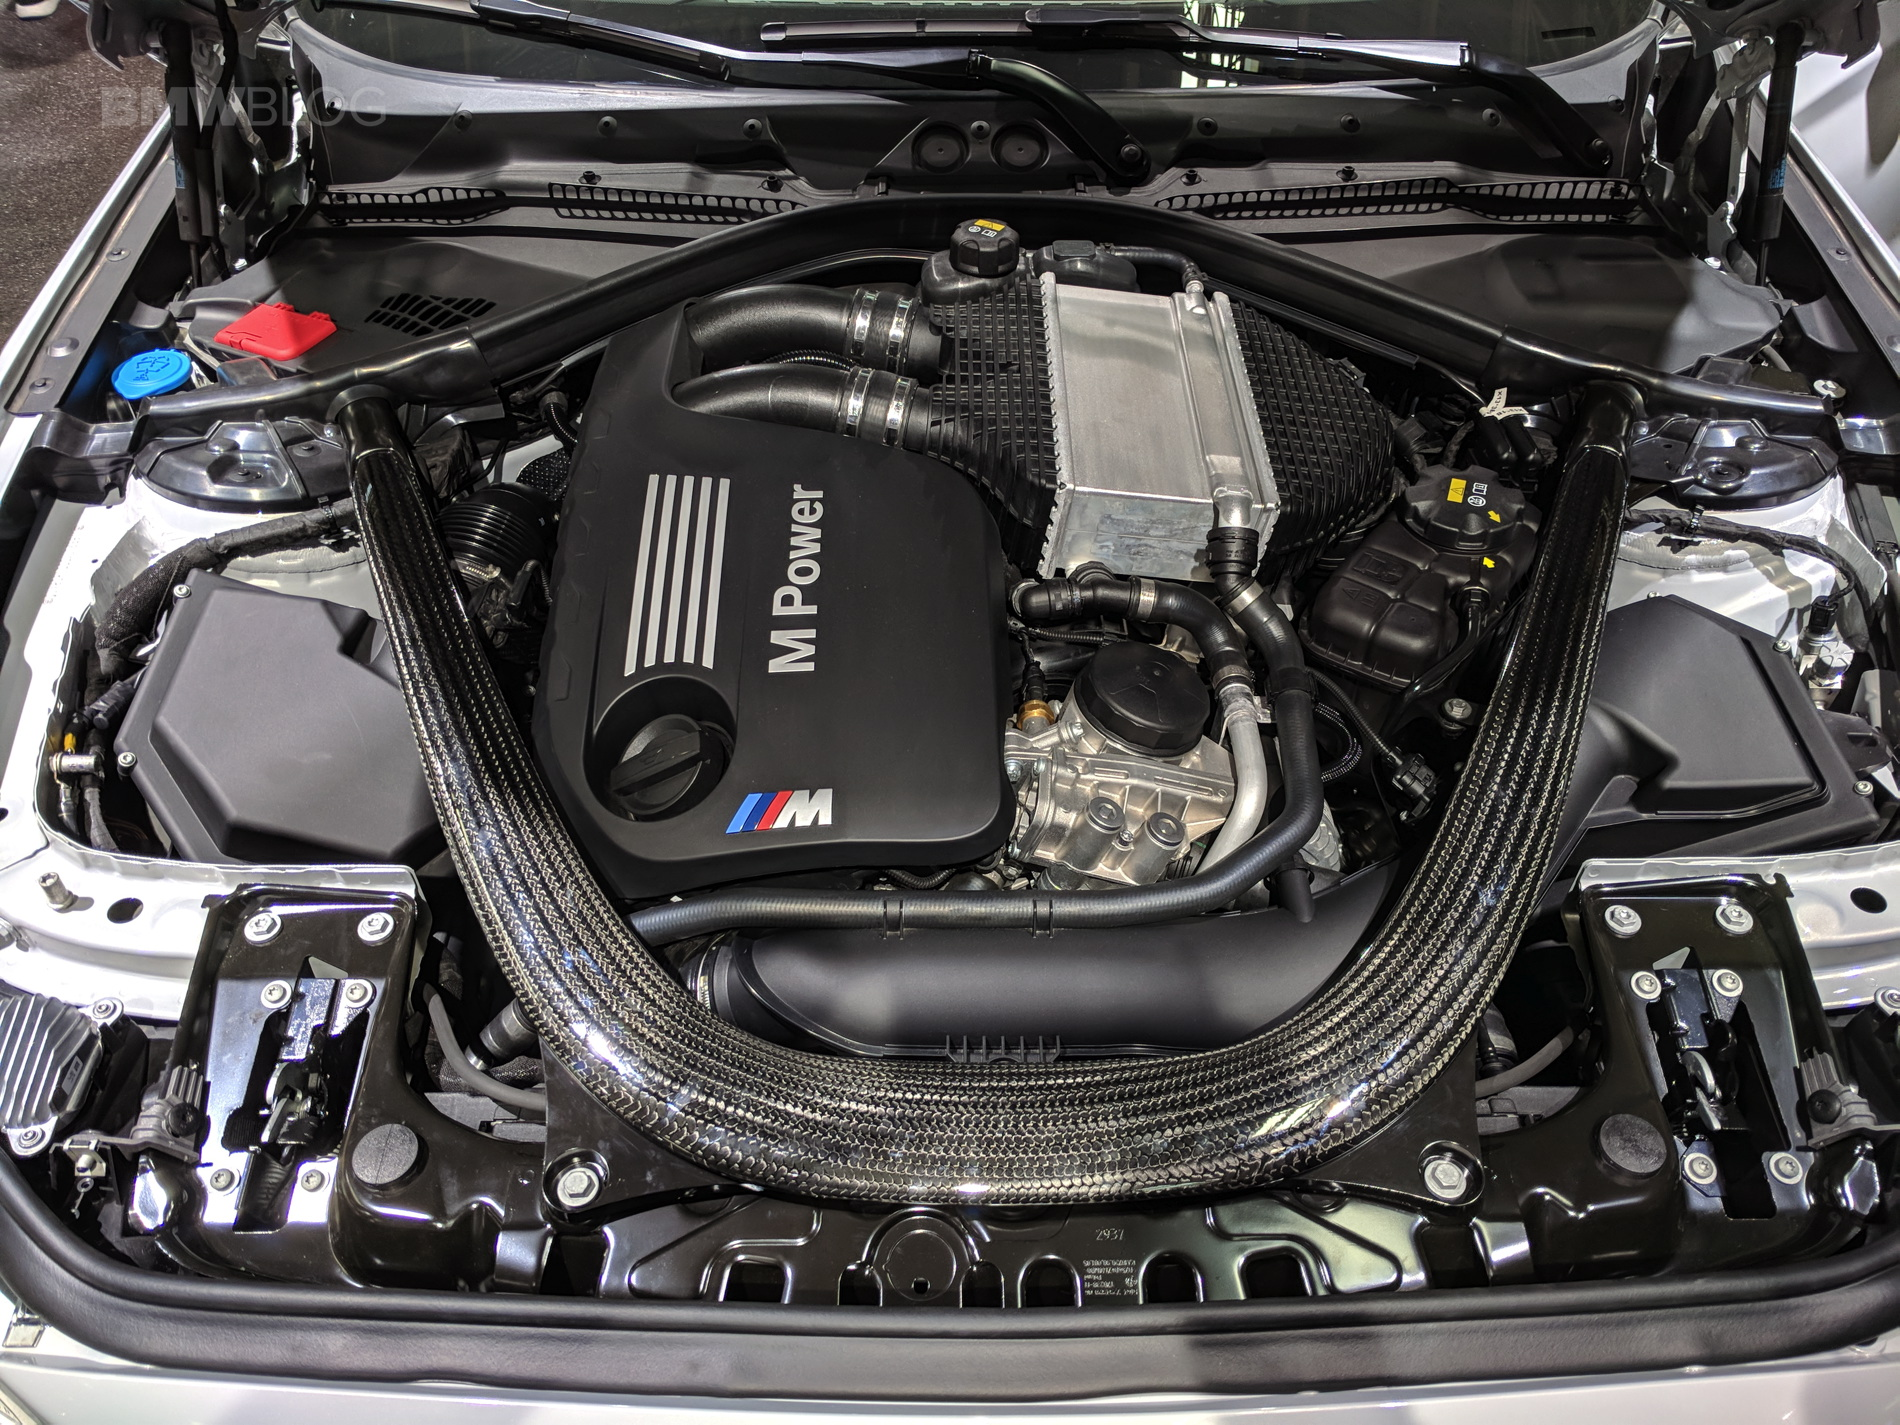 All Bmw Petrol Engines Will Have Particulate Filters